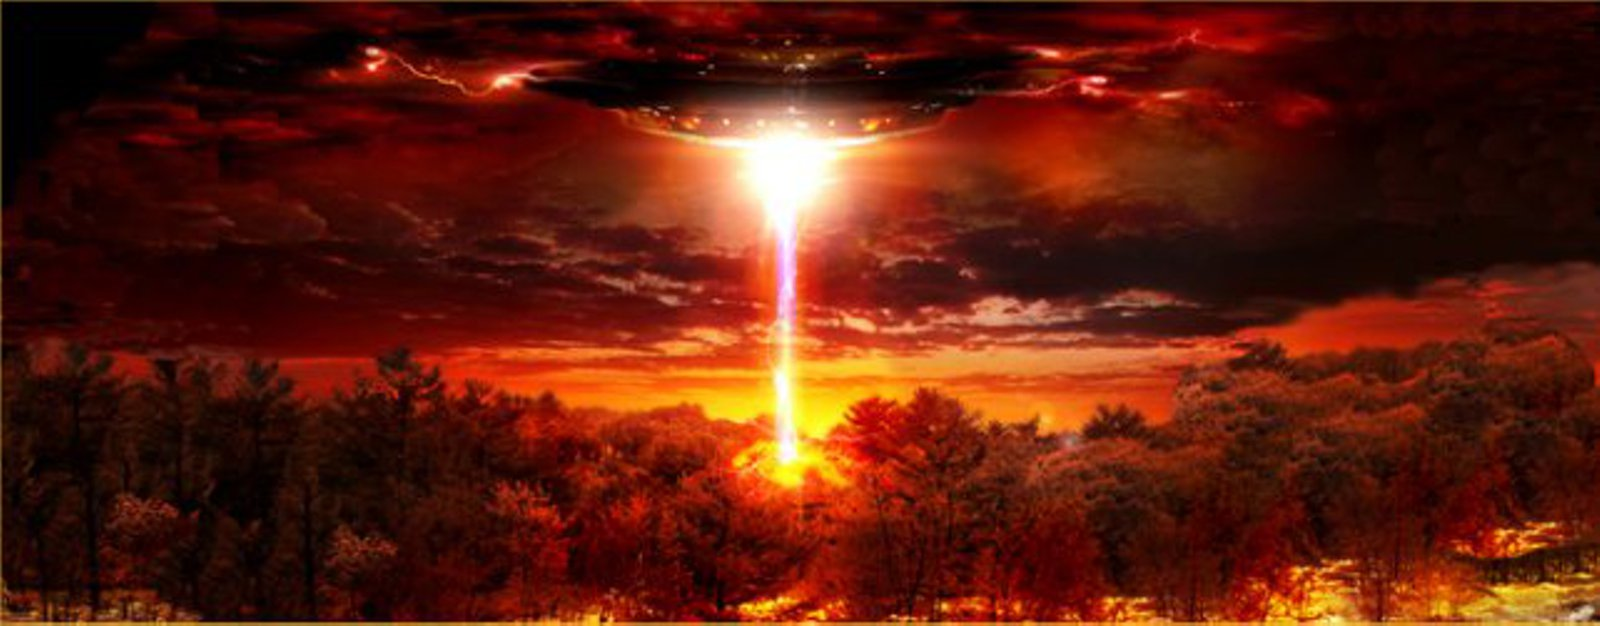 alien_invasion_photoshop_art.jpg